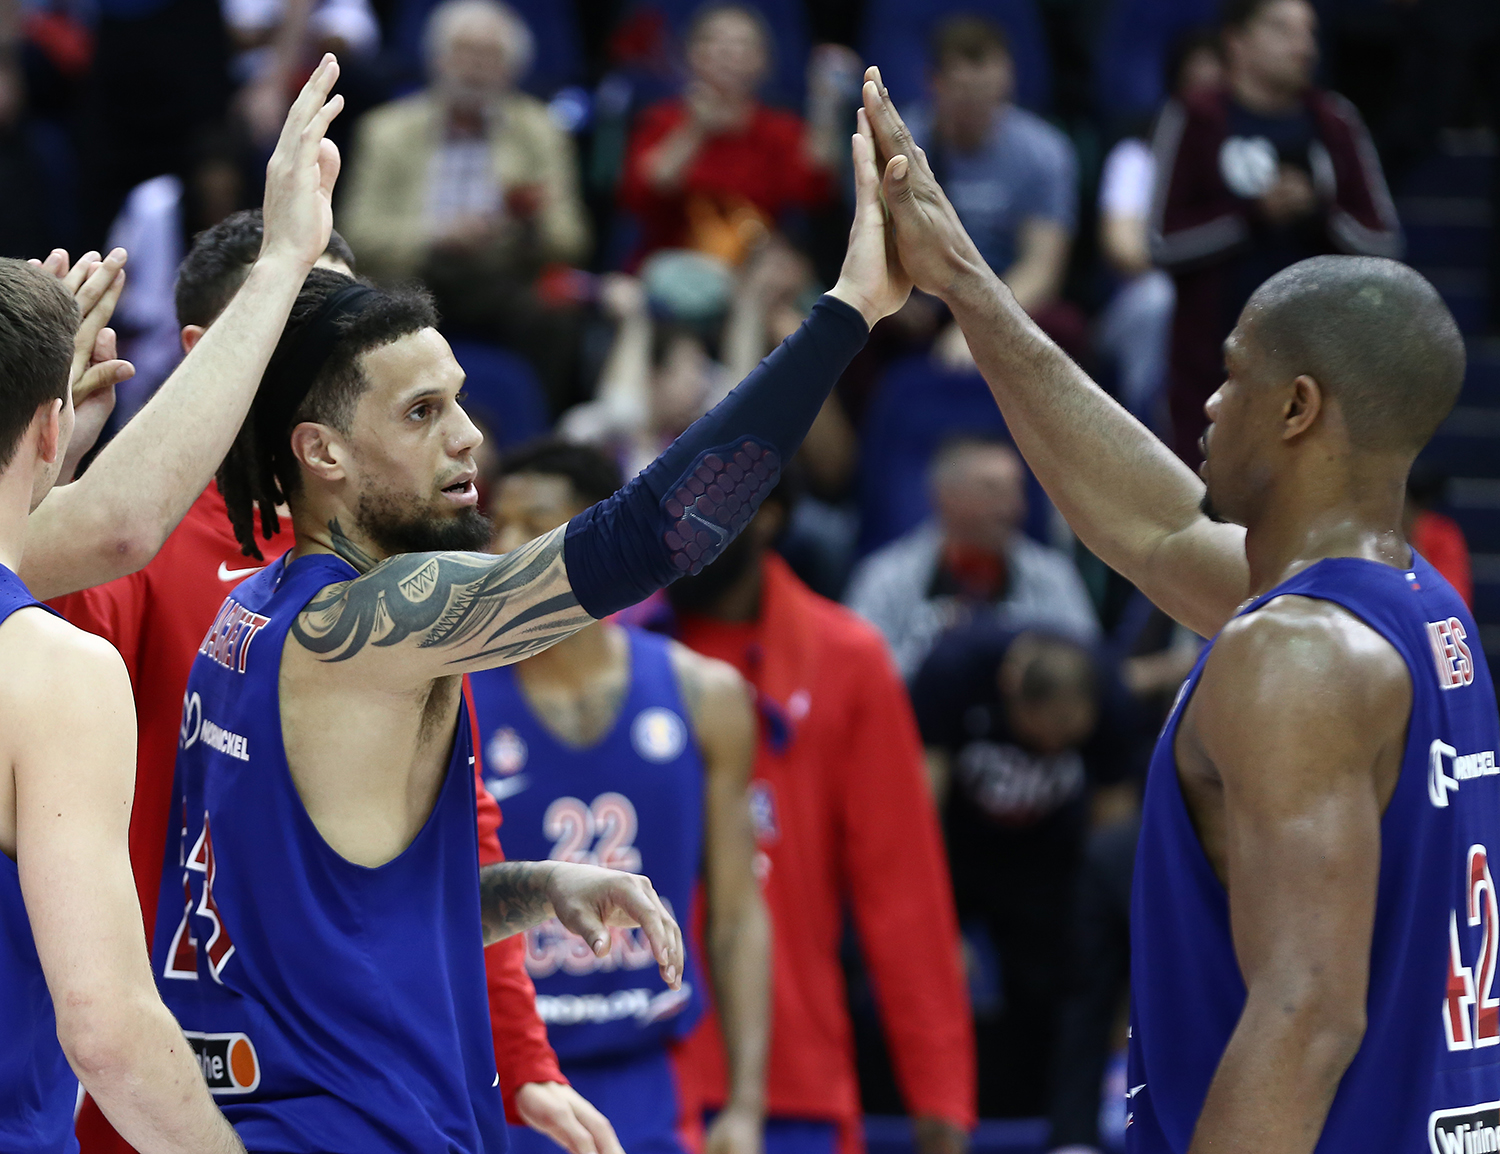 Semifinals In Review: CSKA Wins Series With Blocks, Shved And Timma Crack UNICS's Defense